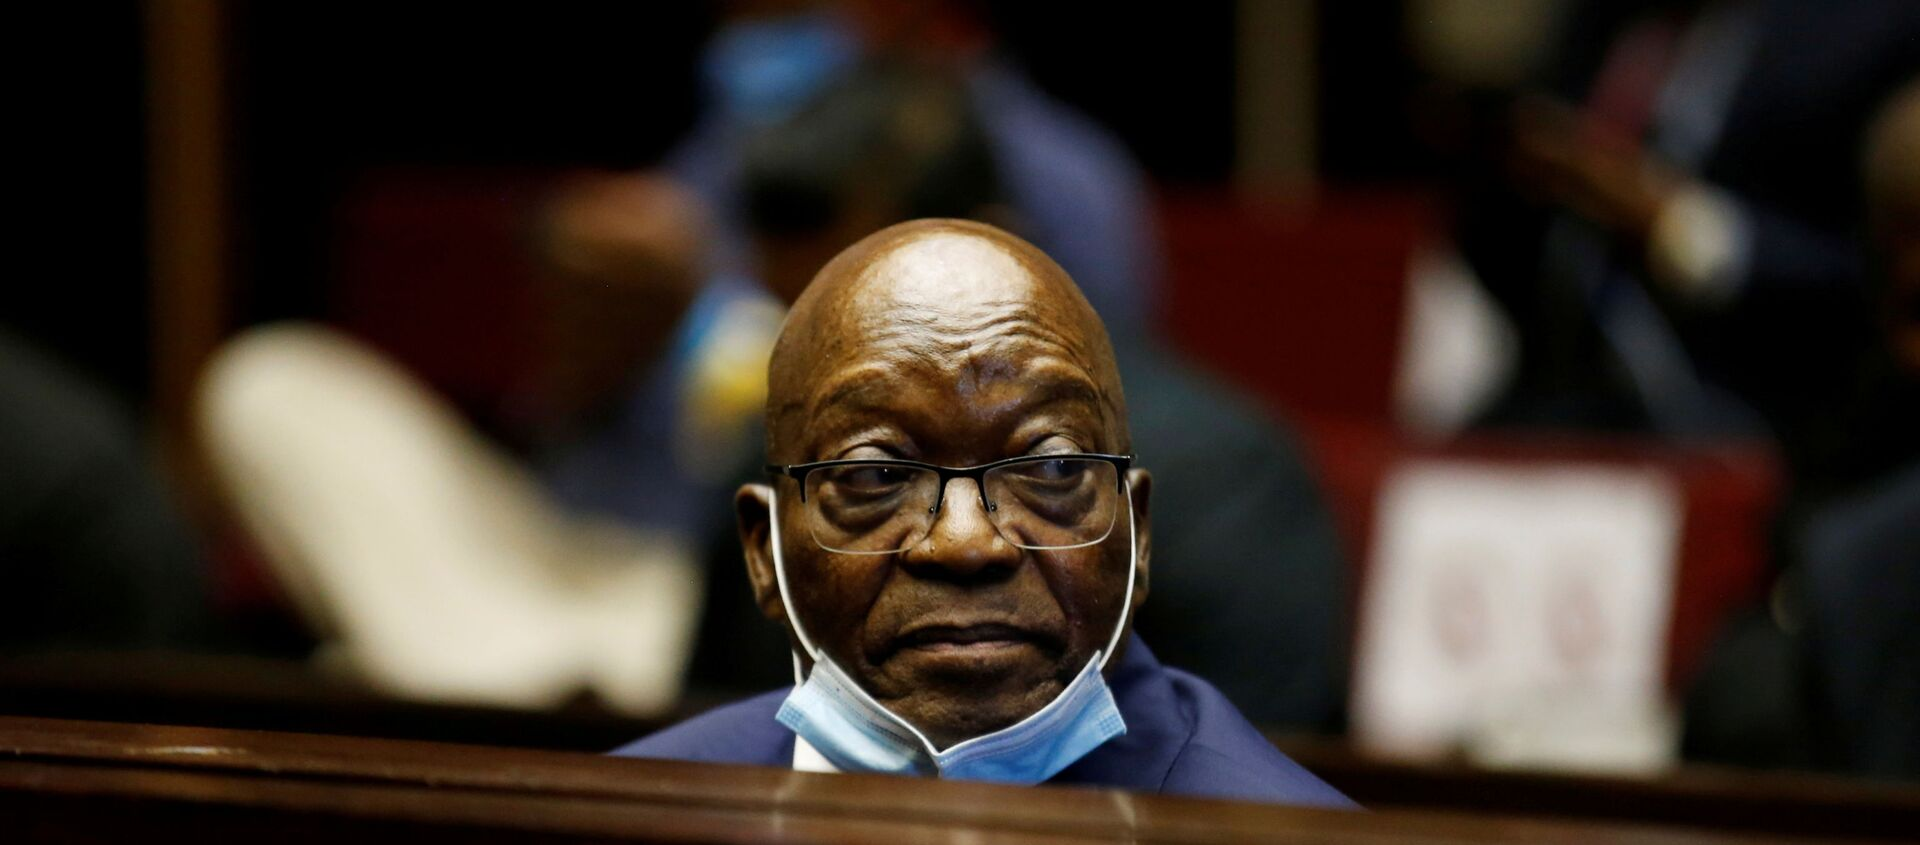 Former South African President Jacob Zuma sits in the dock after recess in his corruption trial in Pietermaritzburg, South Africa, May 26, 2021 - Sputnik International, 1920, 29.06.2021